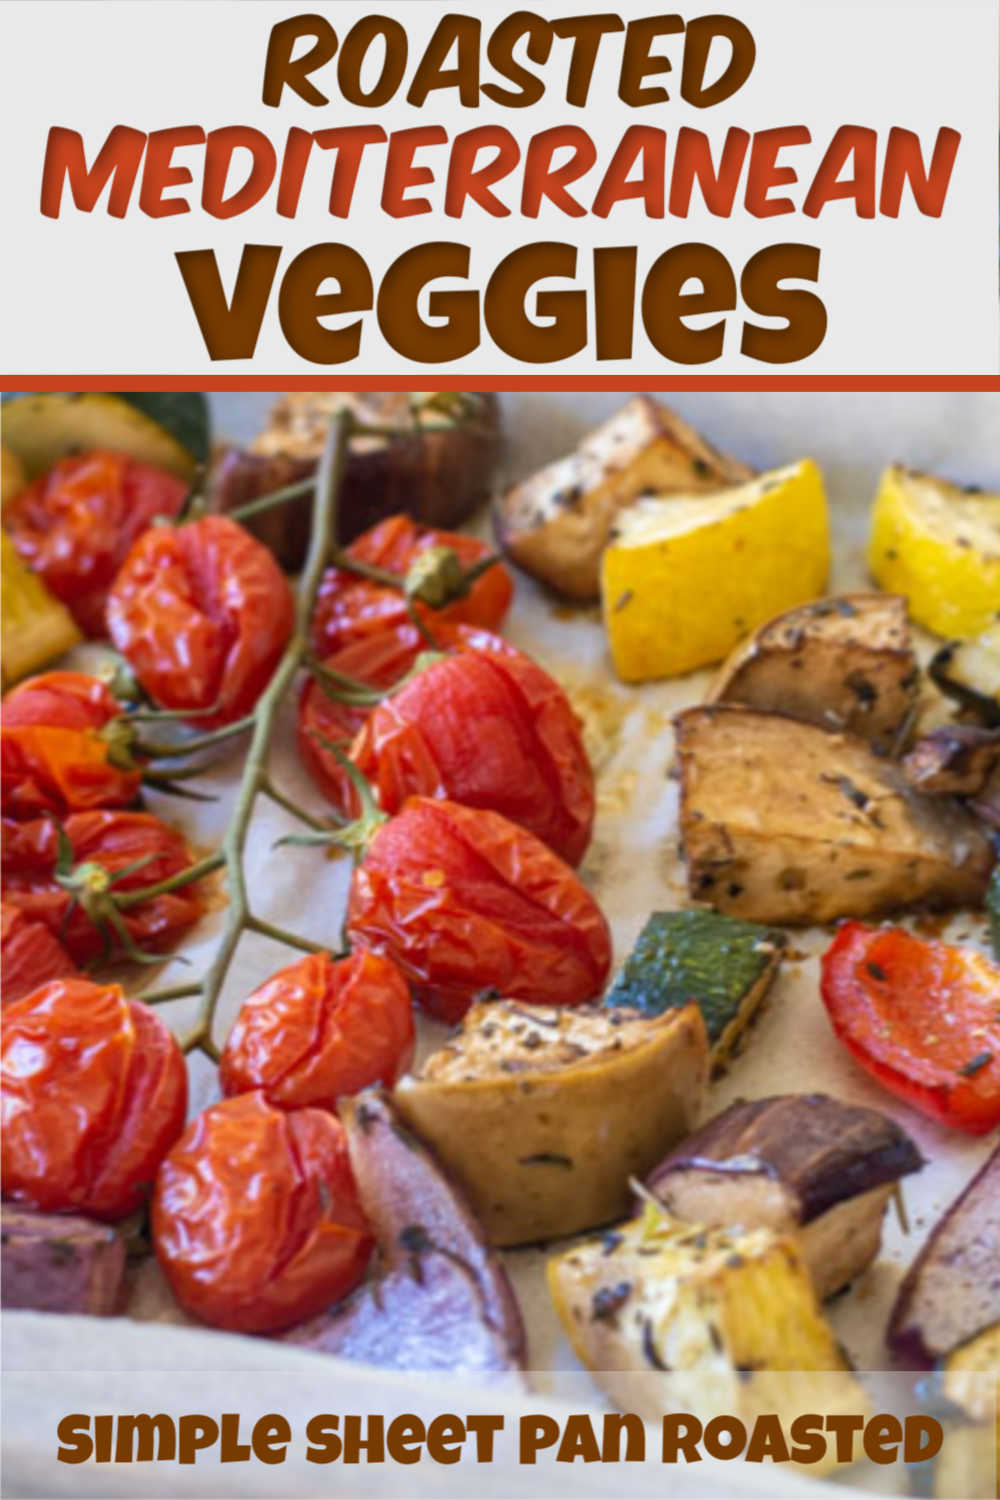 Epic Roasted Mediterranean Vegetables to Make Tonight! Meal Prep Instructions Included!